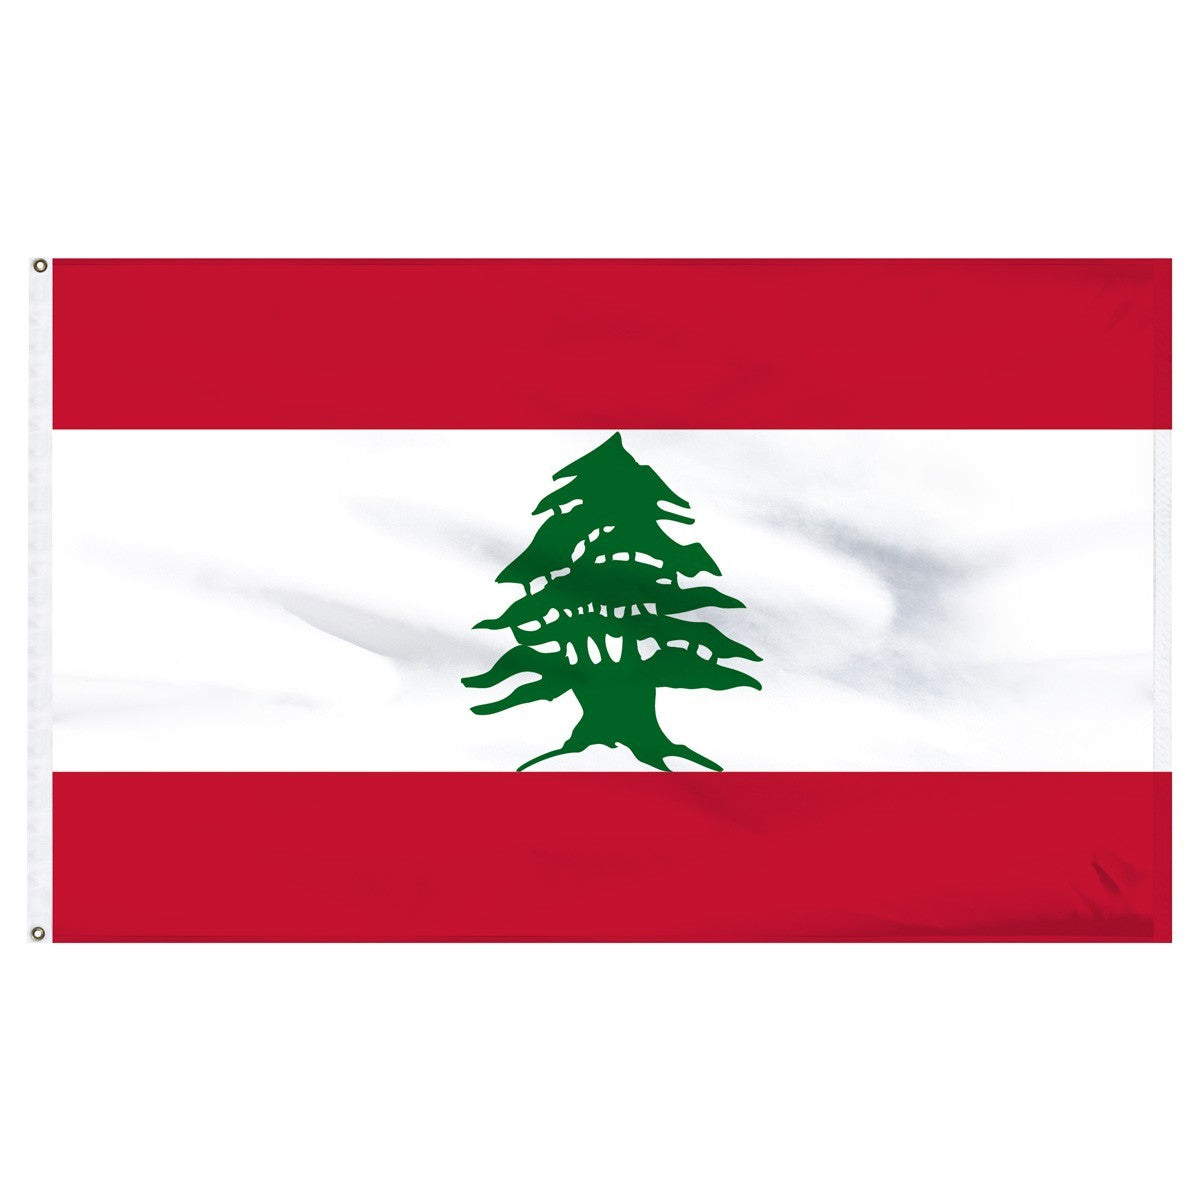 Lebanon 4' x 6' Outdoor Nylon Flag